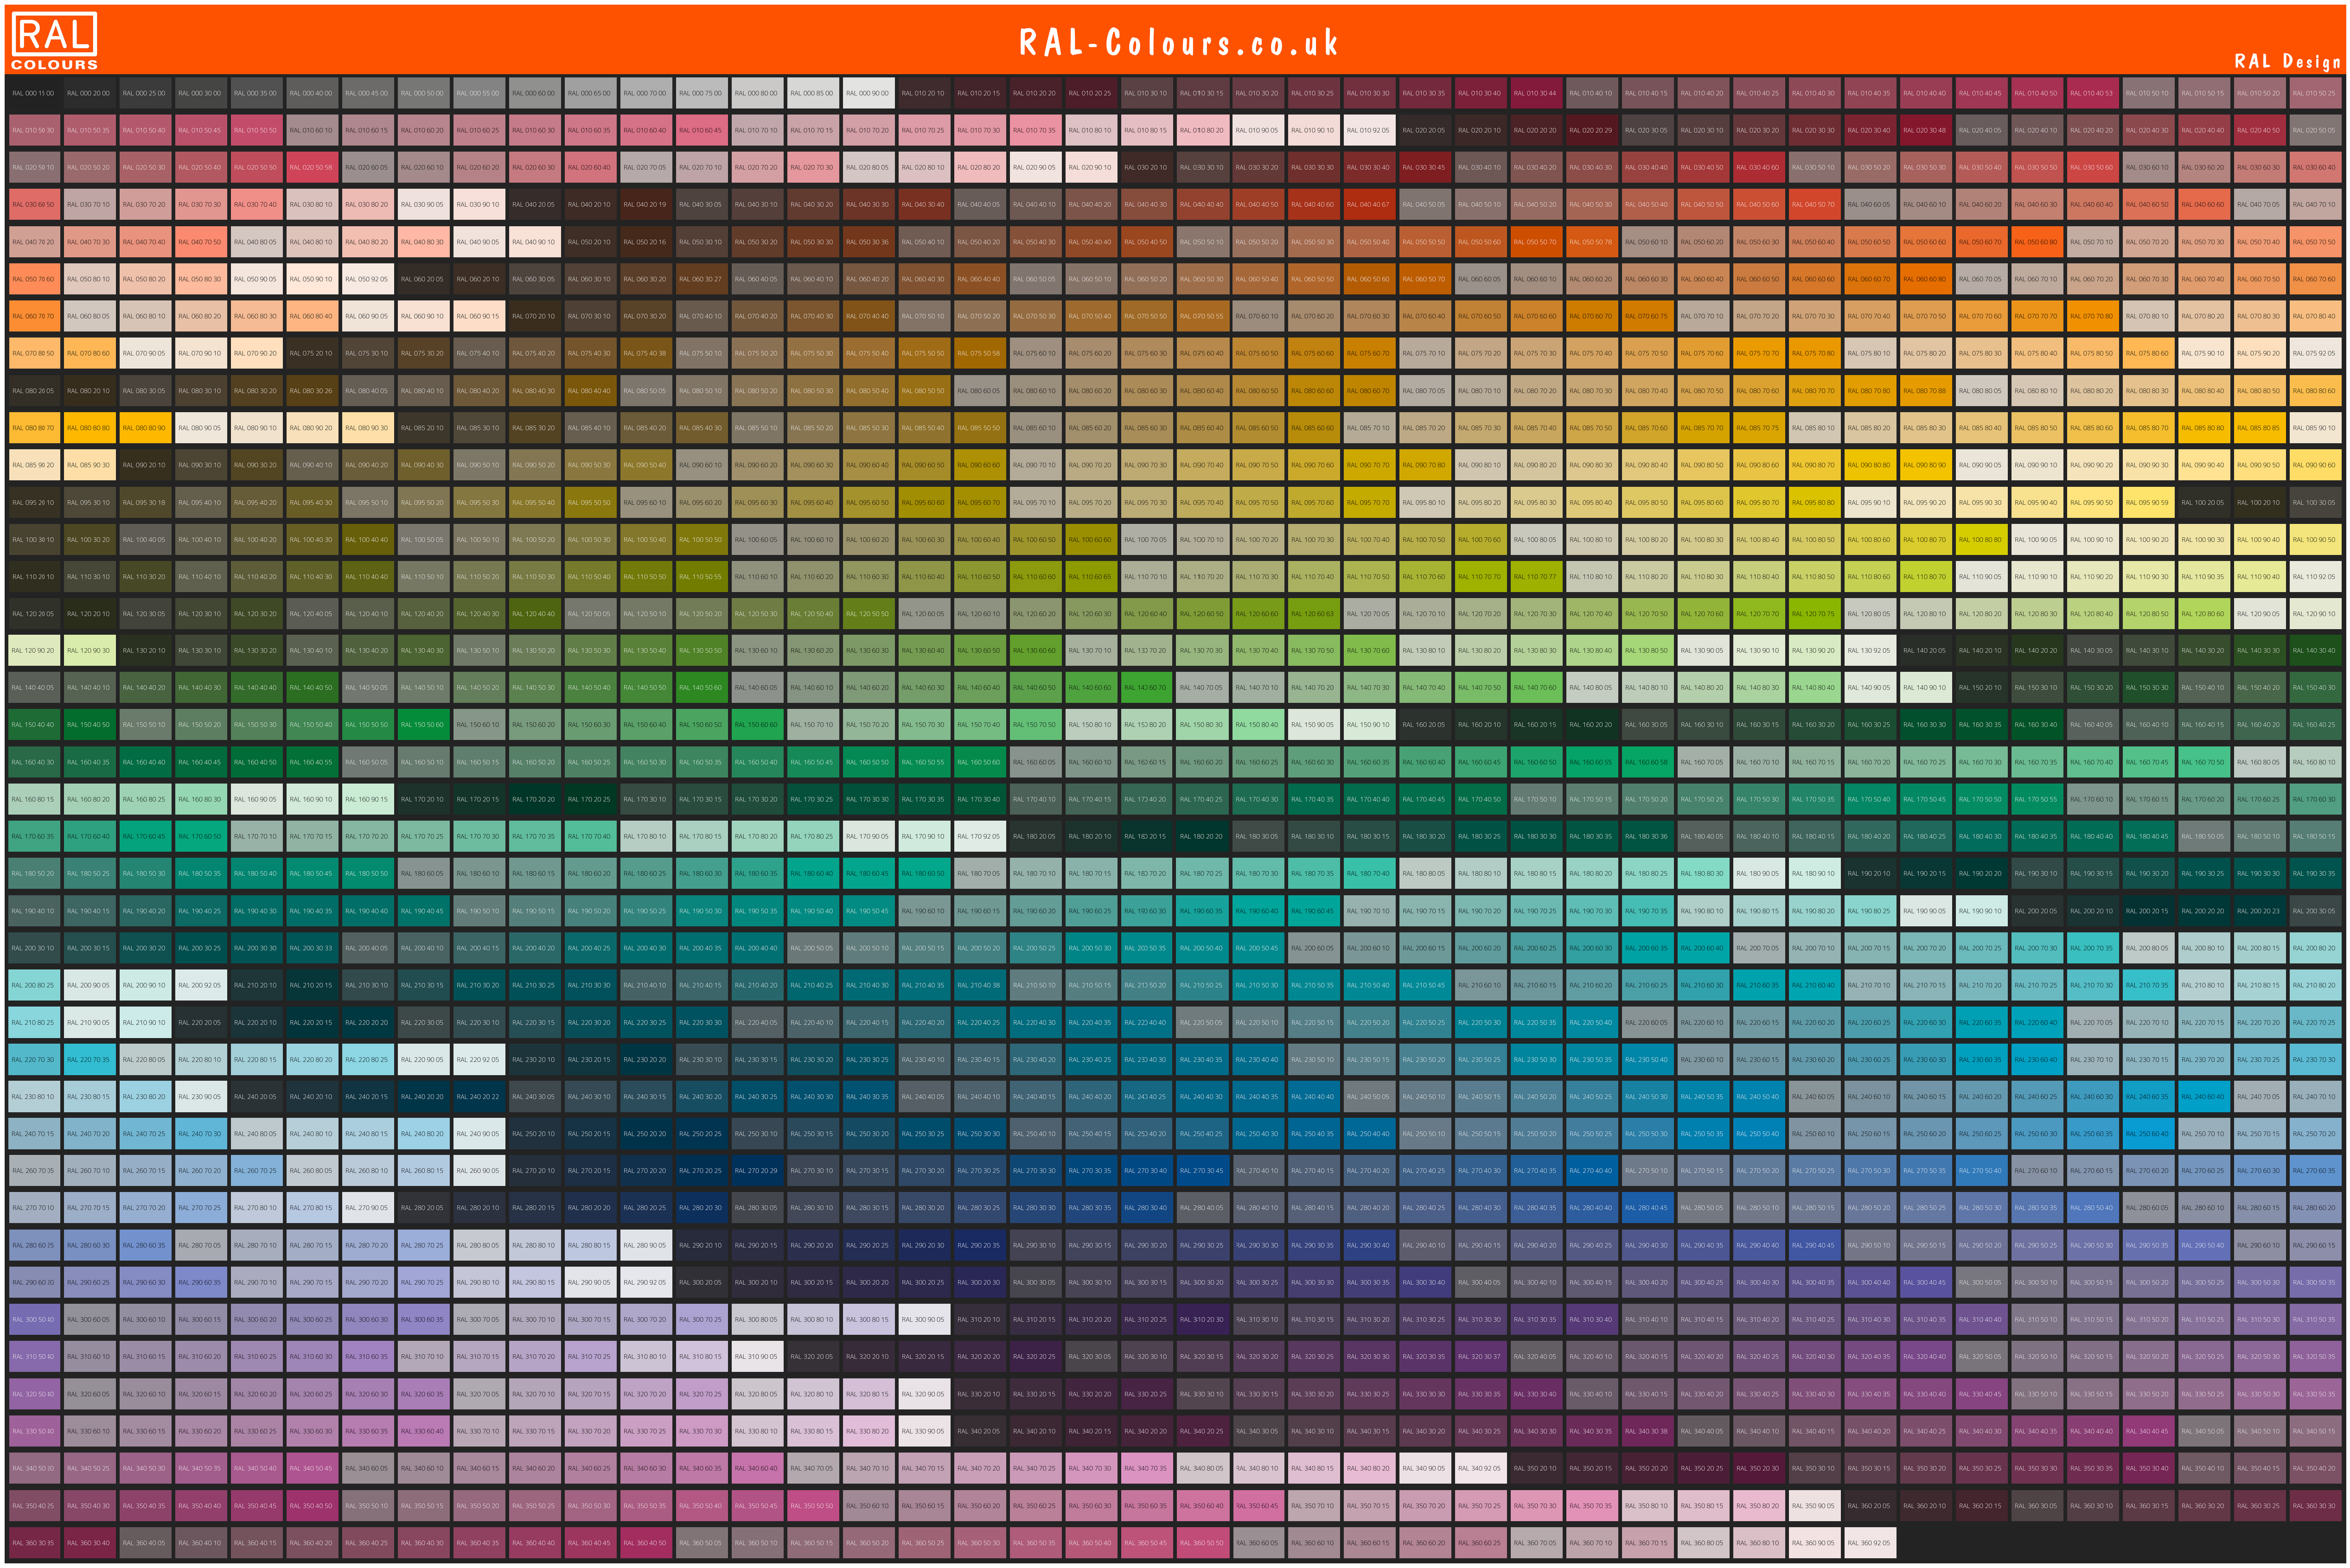 RAL Design colour chart